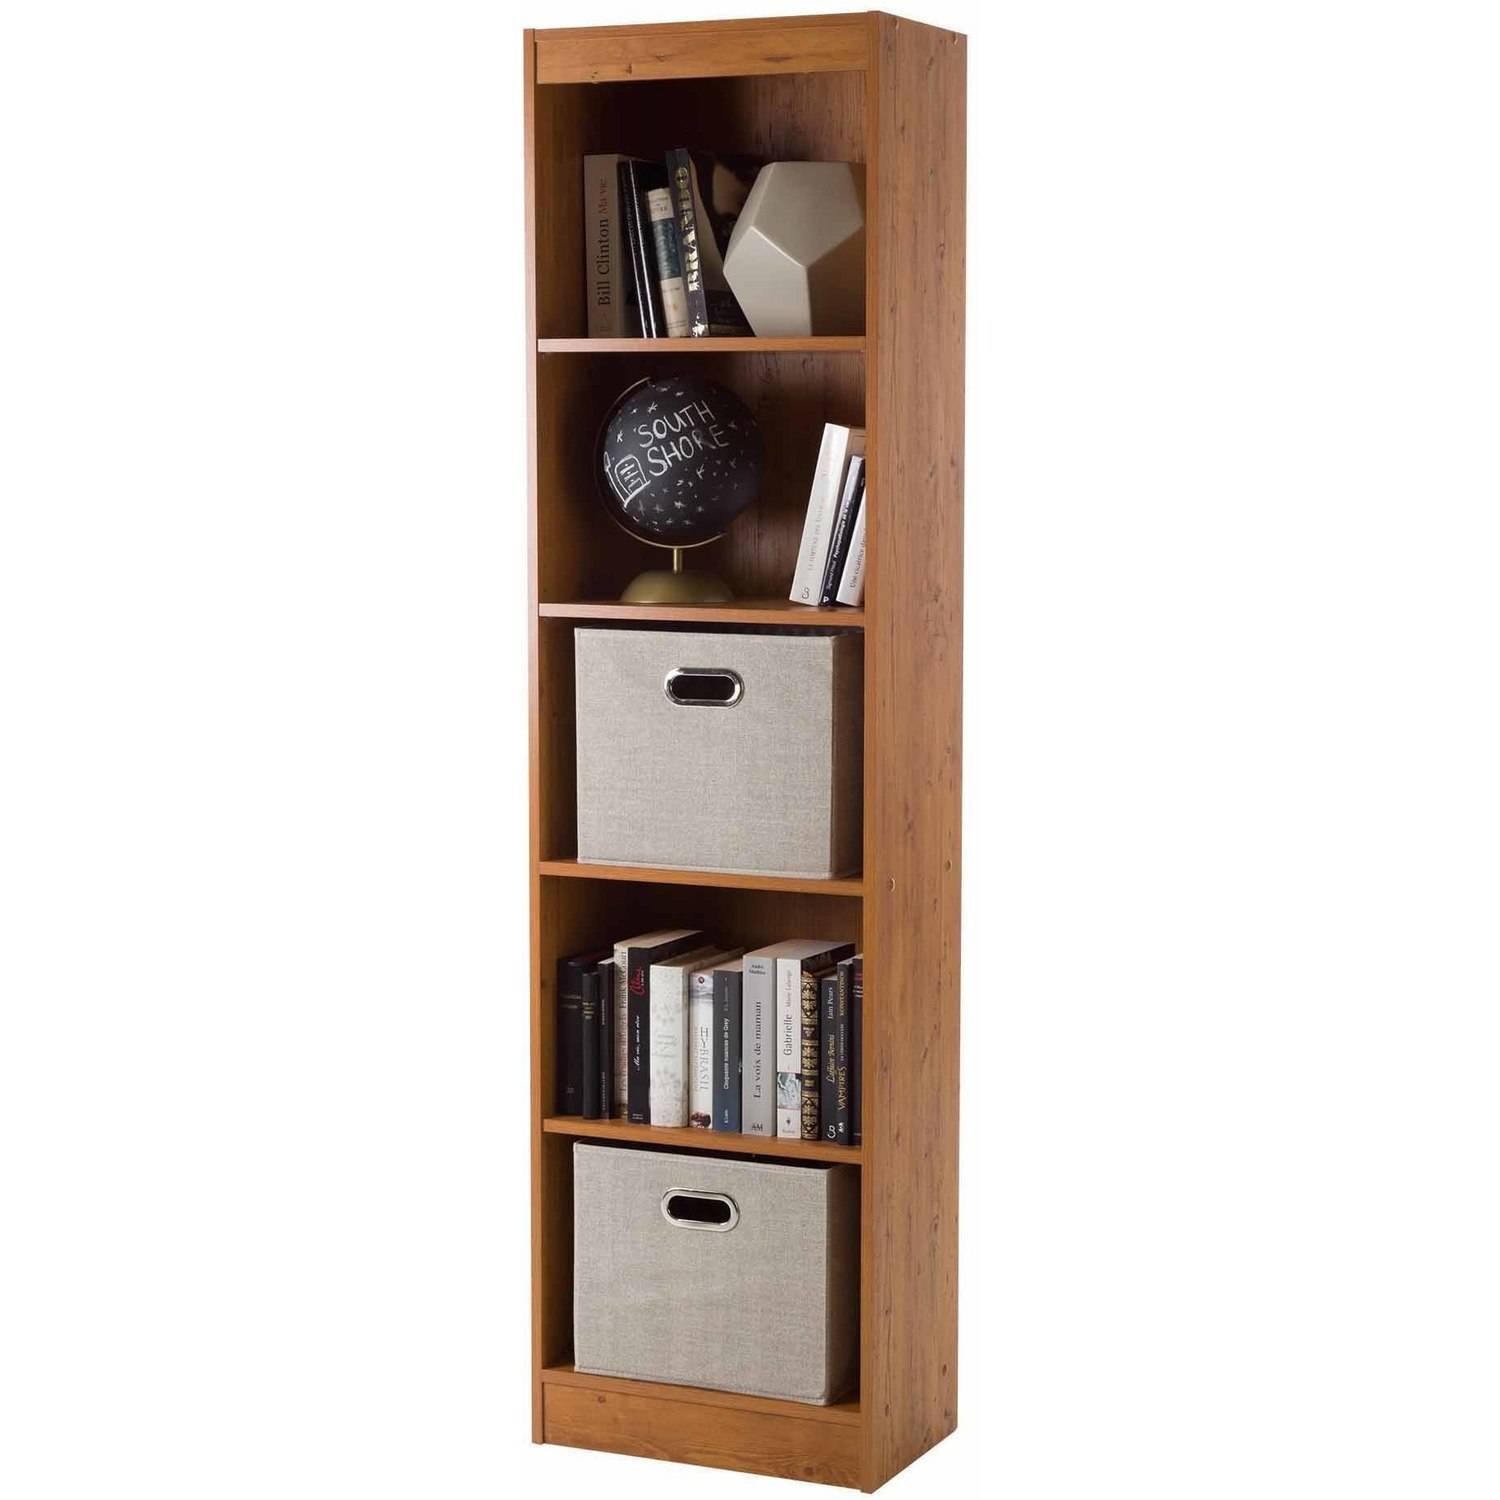 Charming South Shore Smart Basics 5 Shelf Narrow Bookcase